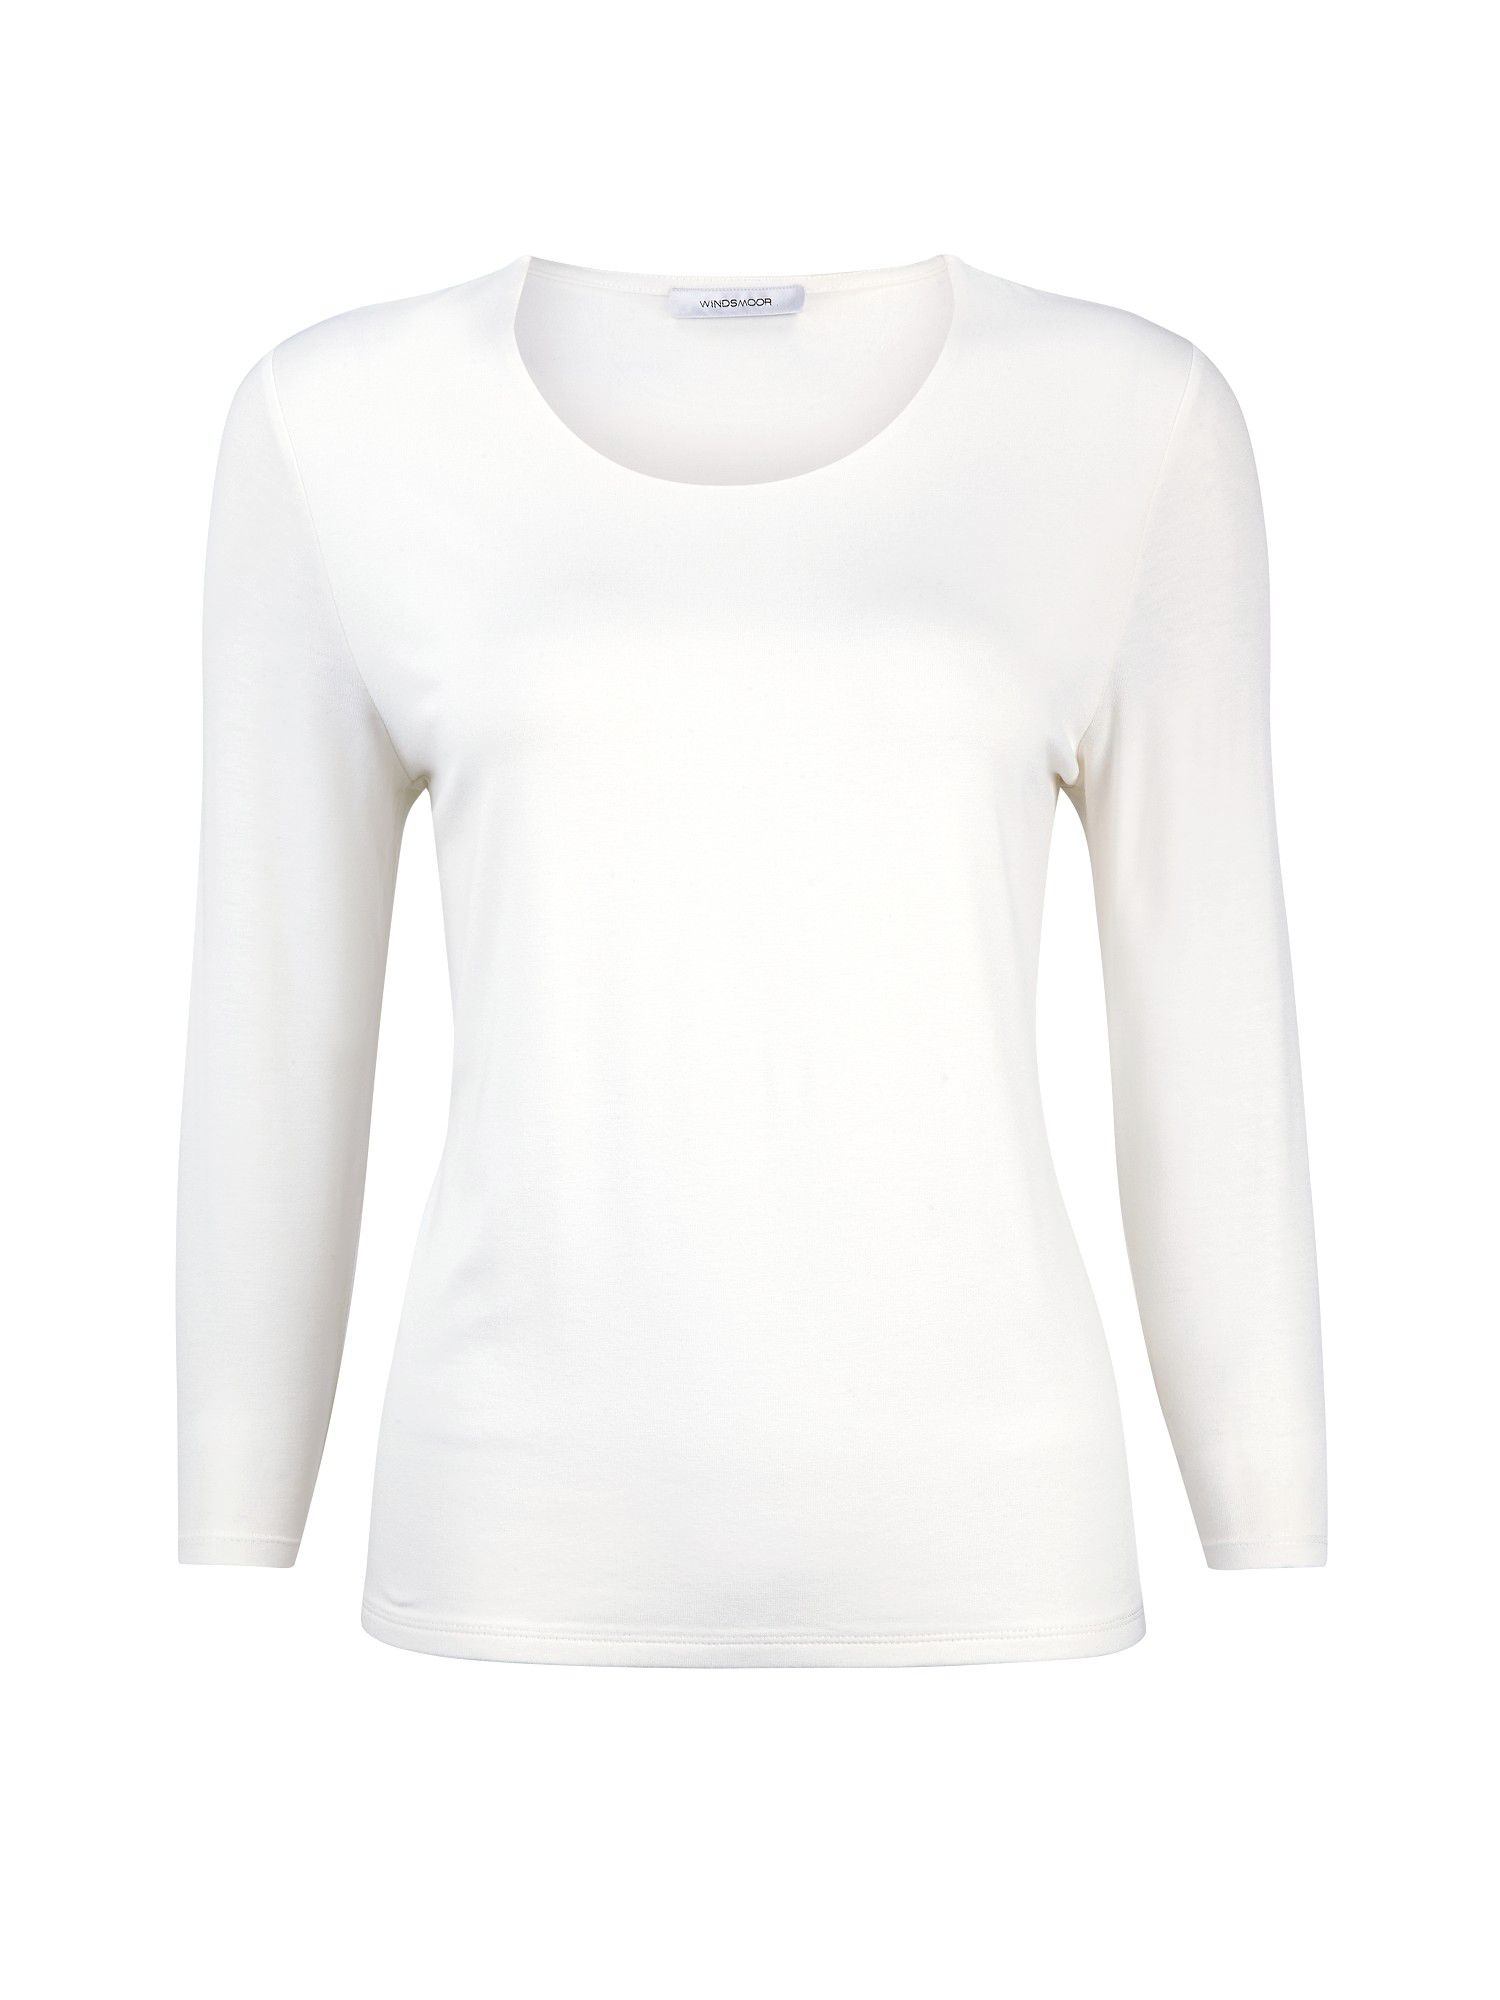 Ivory scoop neck top